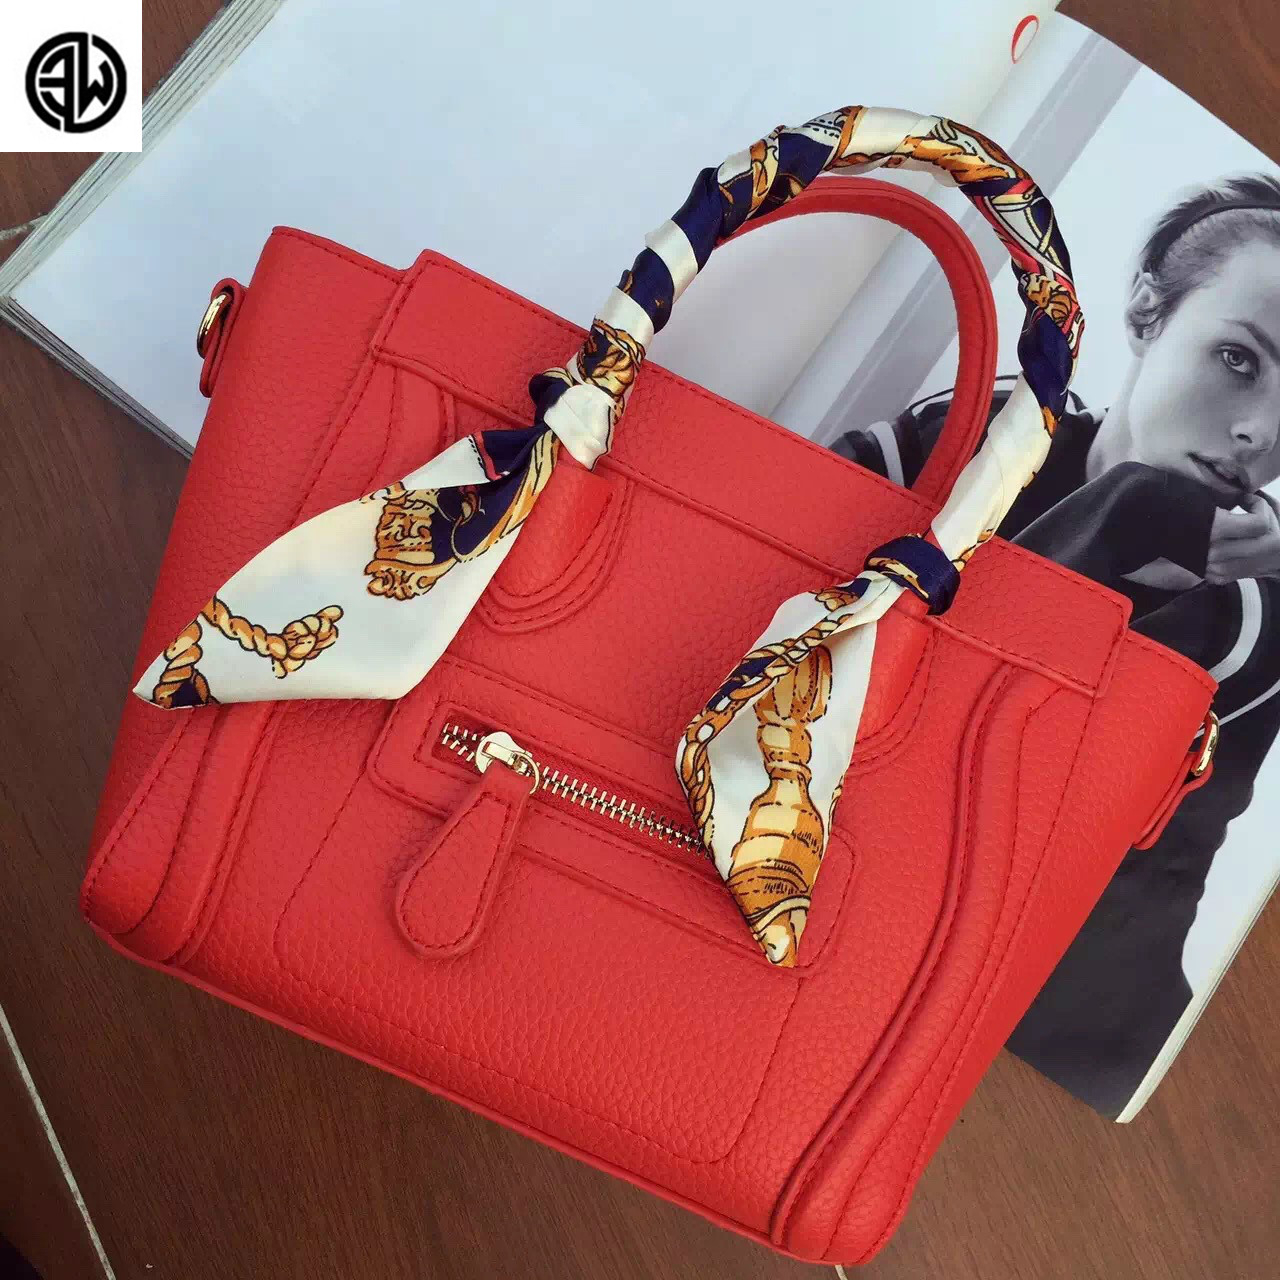 2018 Luxury Brand Women Leather Handbag Shoulder Bag Female Purses and Handbags Sac A Main Women Tote Bags luis vuiton gg Bag qiaobao trapeze bag women leather handbags luxury brand bags sac a main bag female shoulder ladies luxury women bags design tote